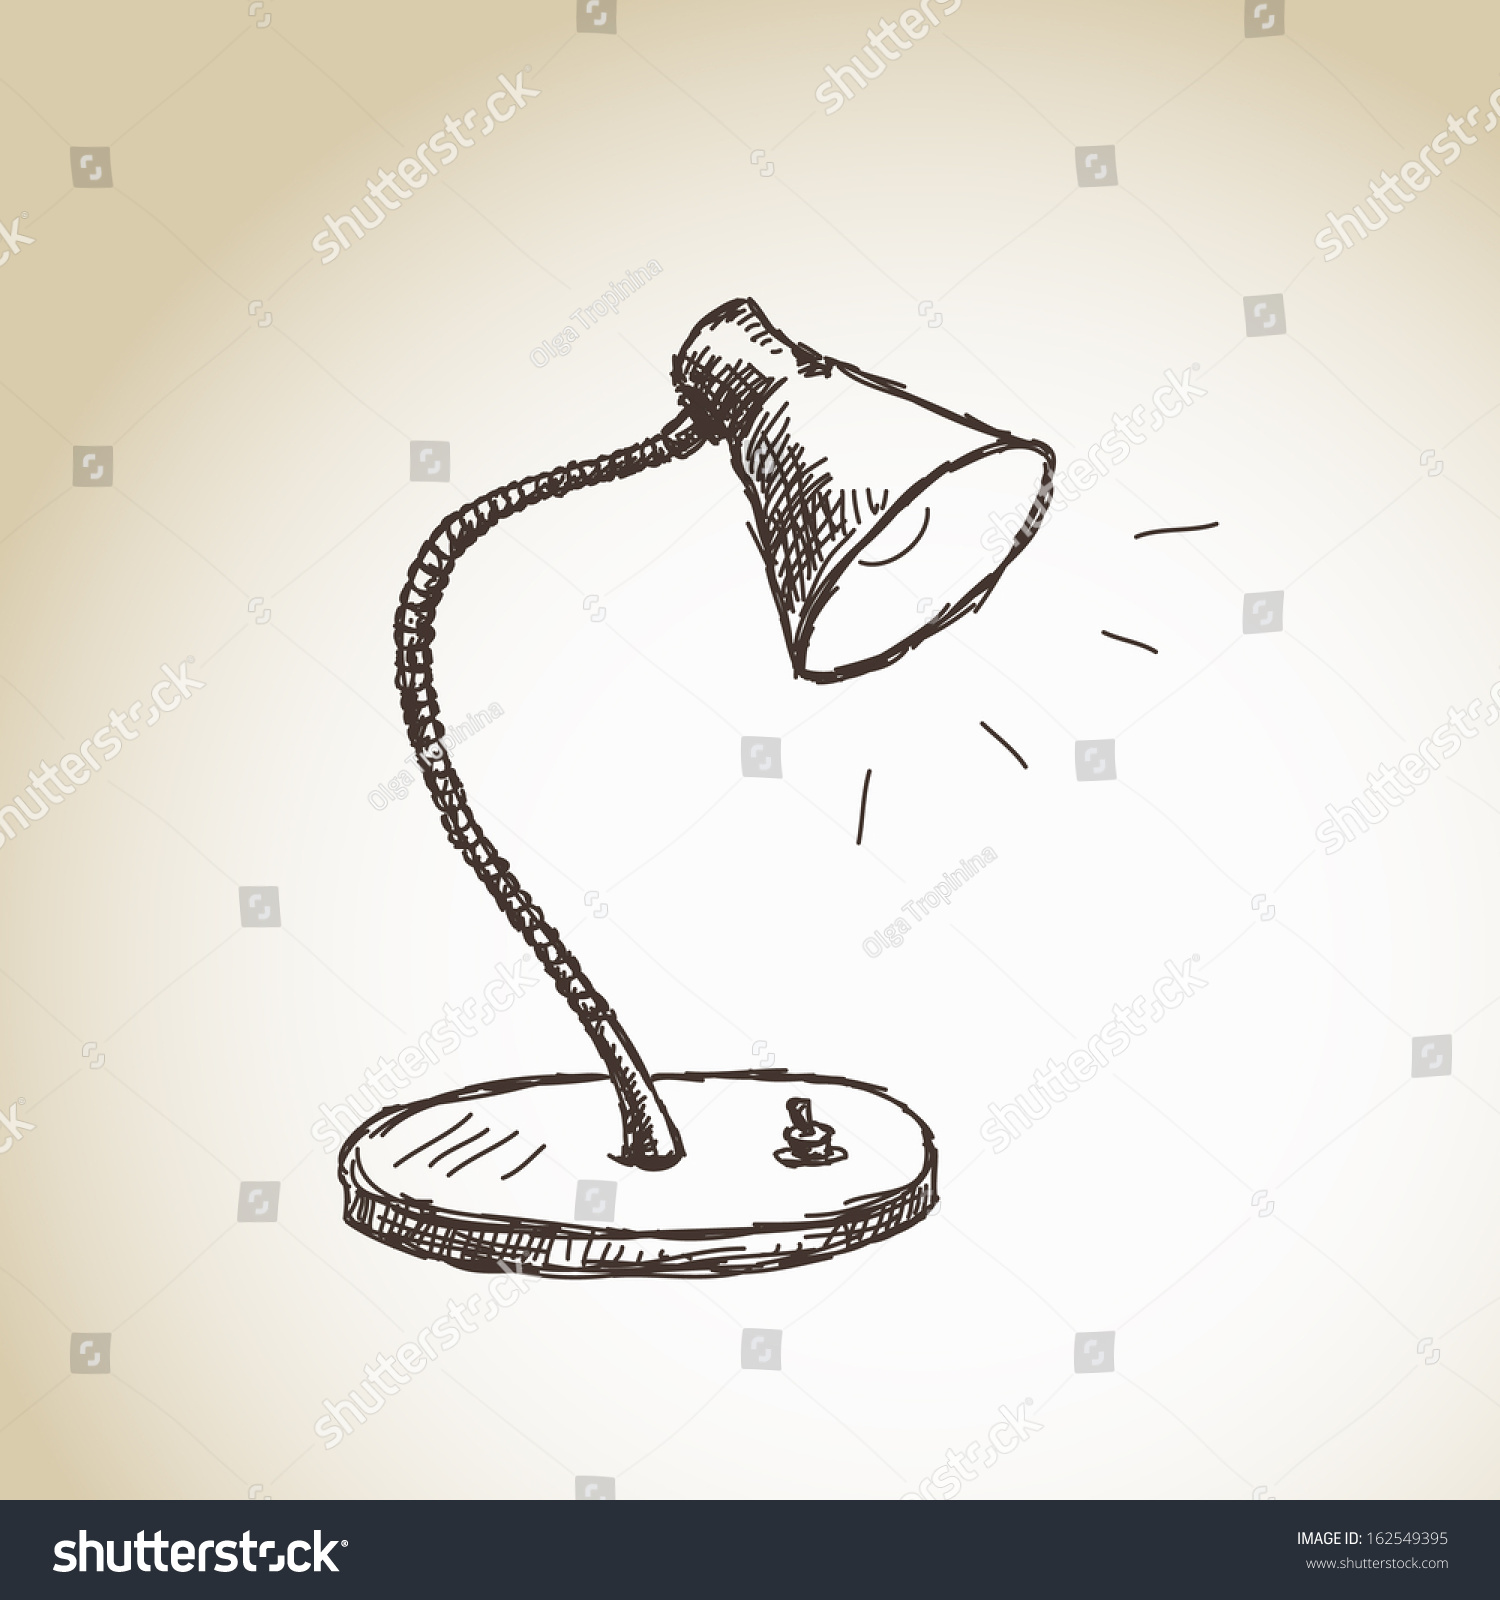 Table lamp for drawing - Hand Drawn Table Lamp Vector